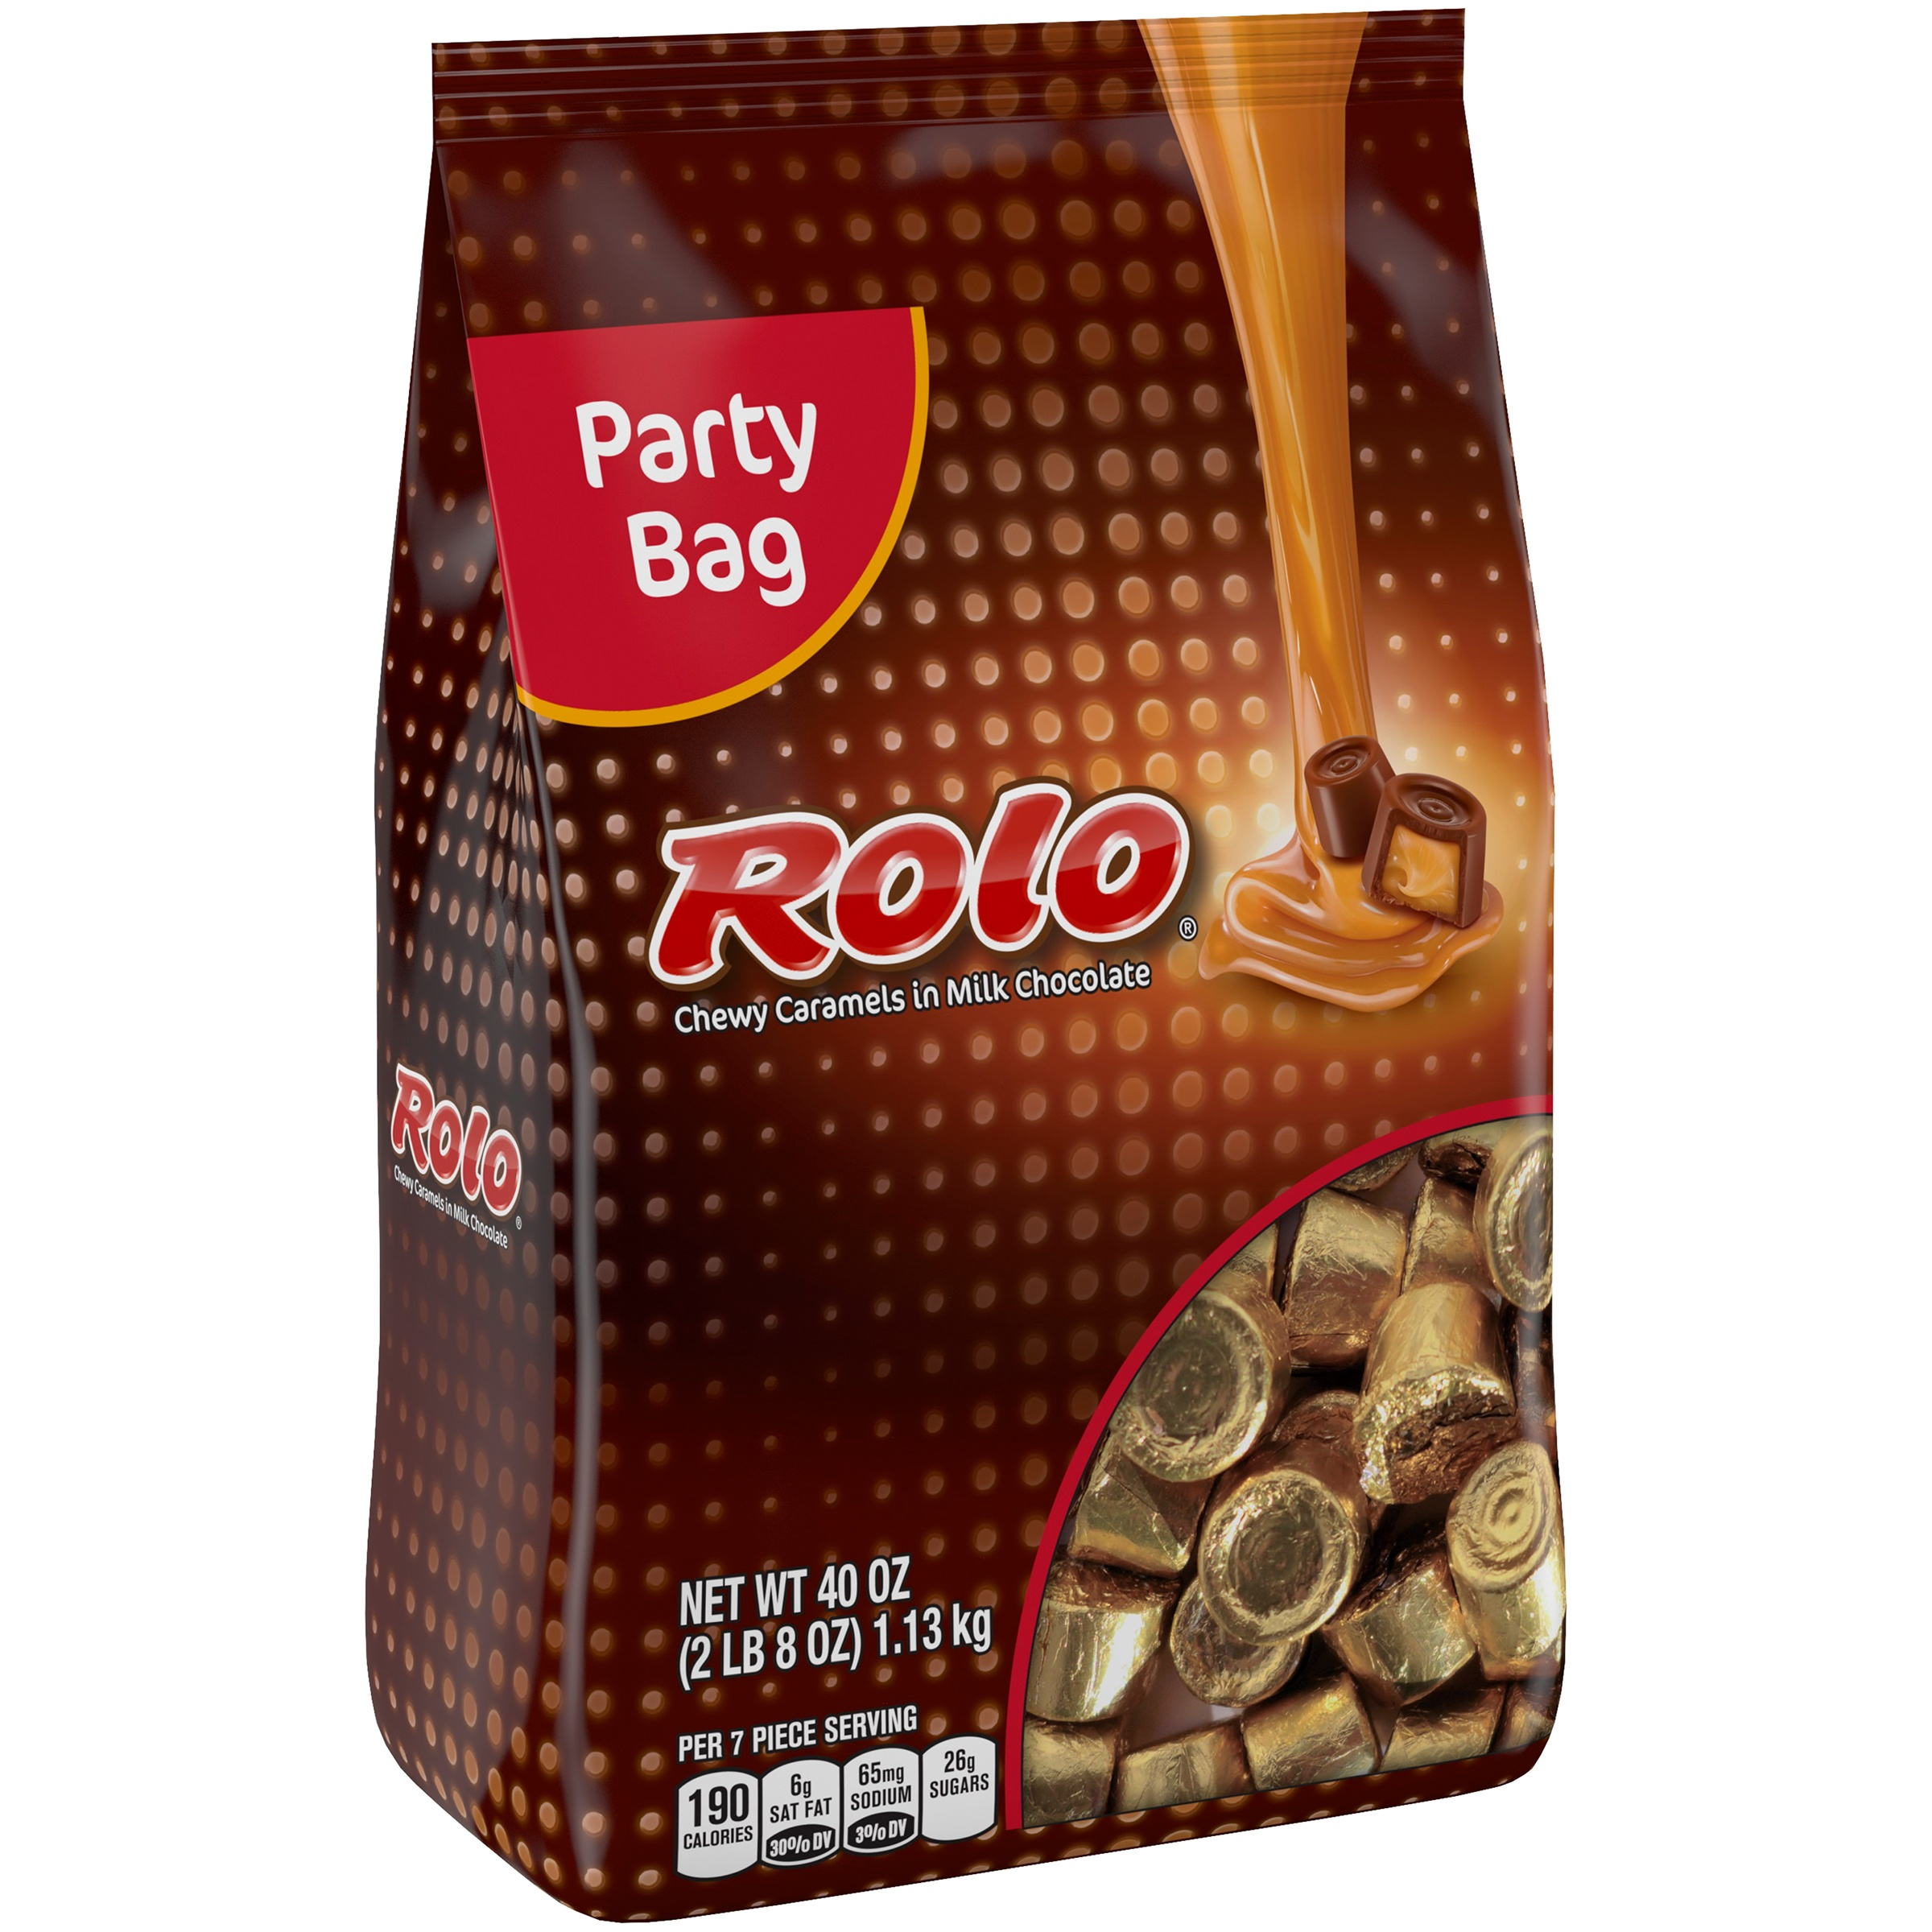 Rolo, Chewy Caramels in Milk Chocolate Candy, 40 Oz